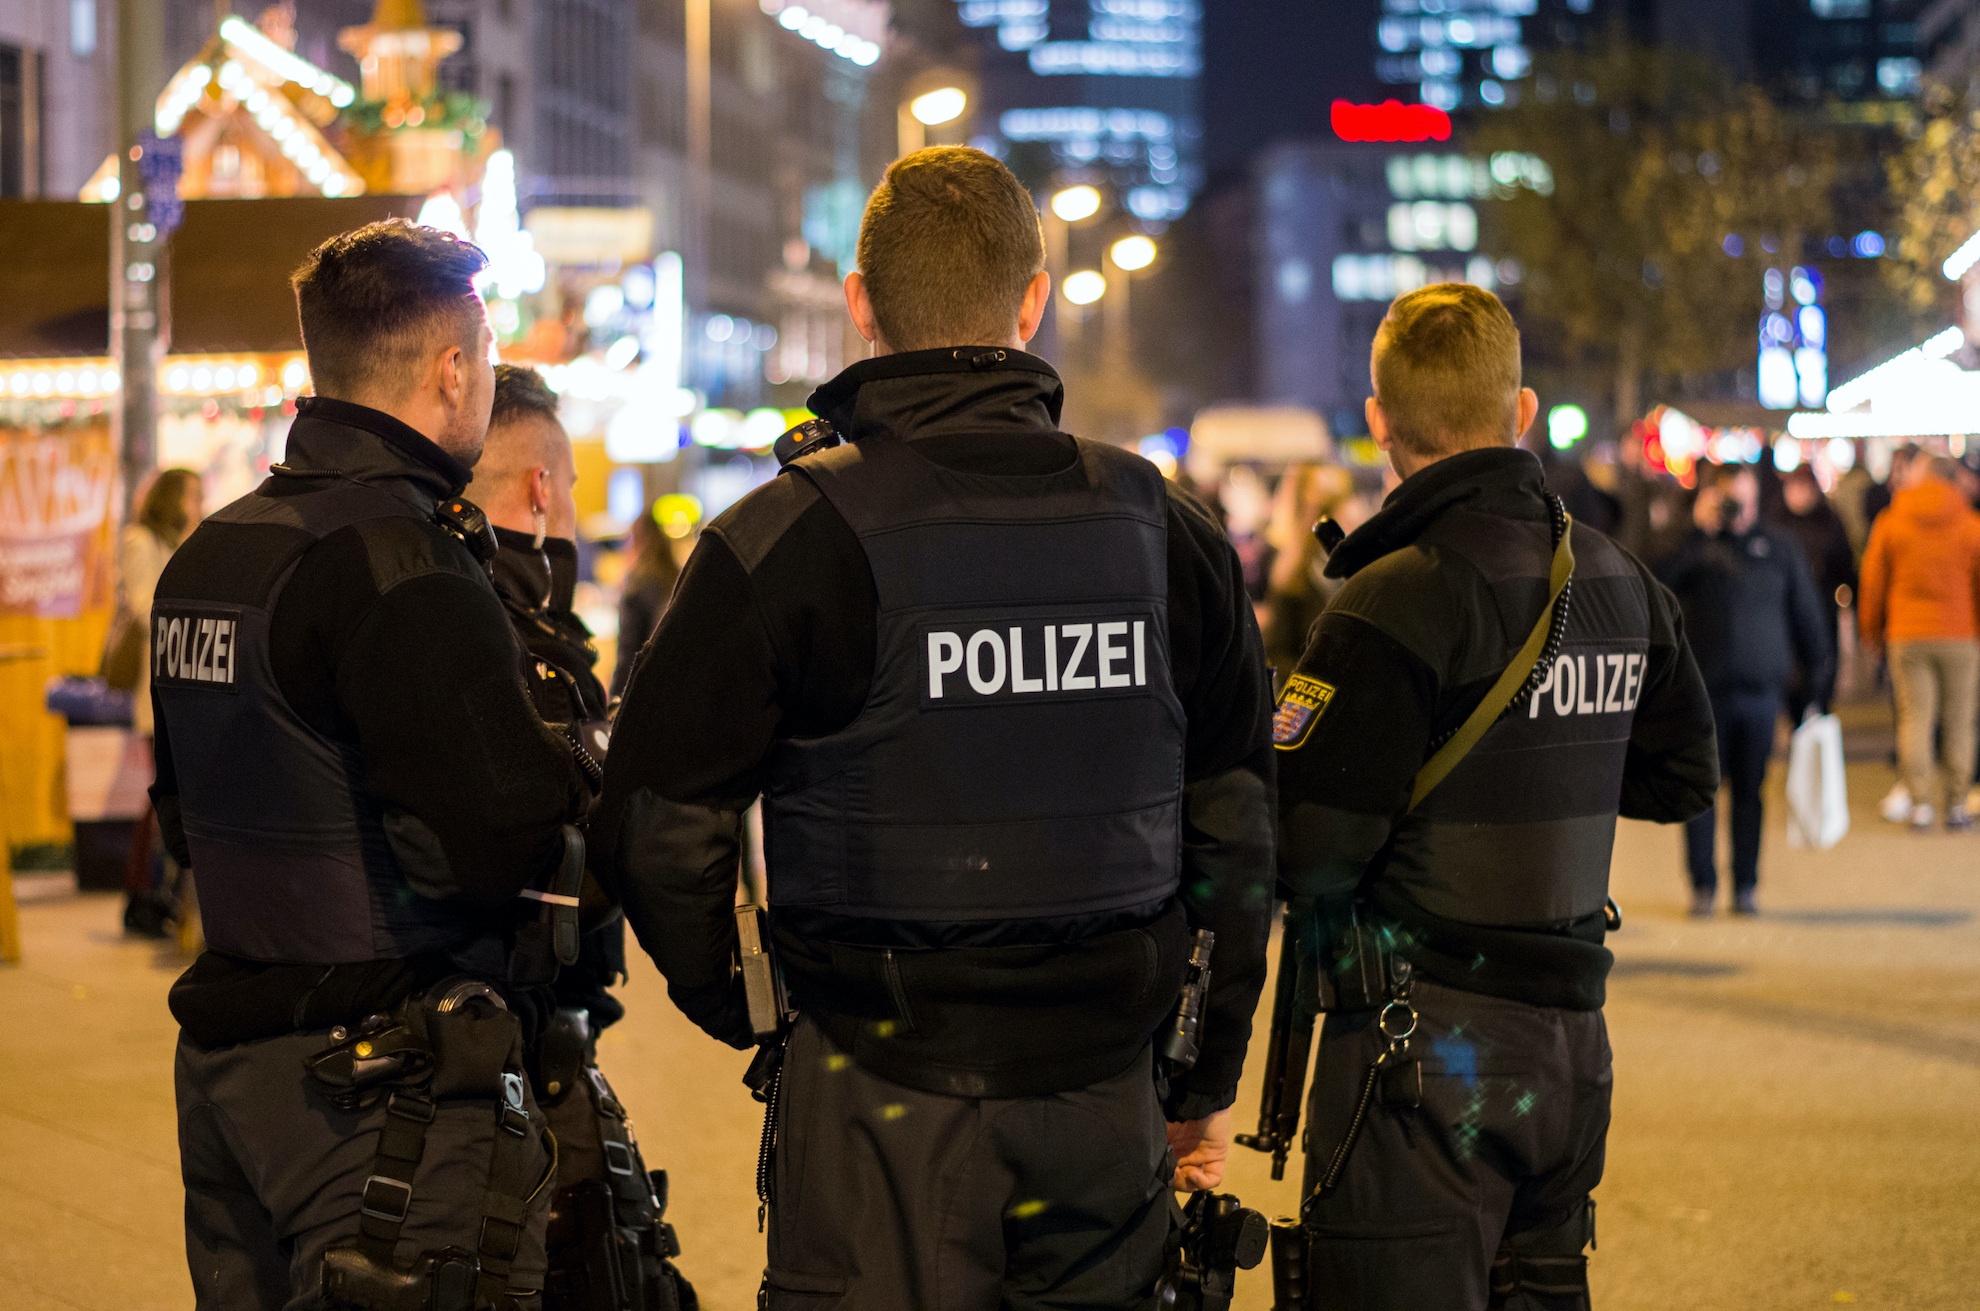 Germany - ISIS morphed into a powerful network